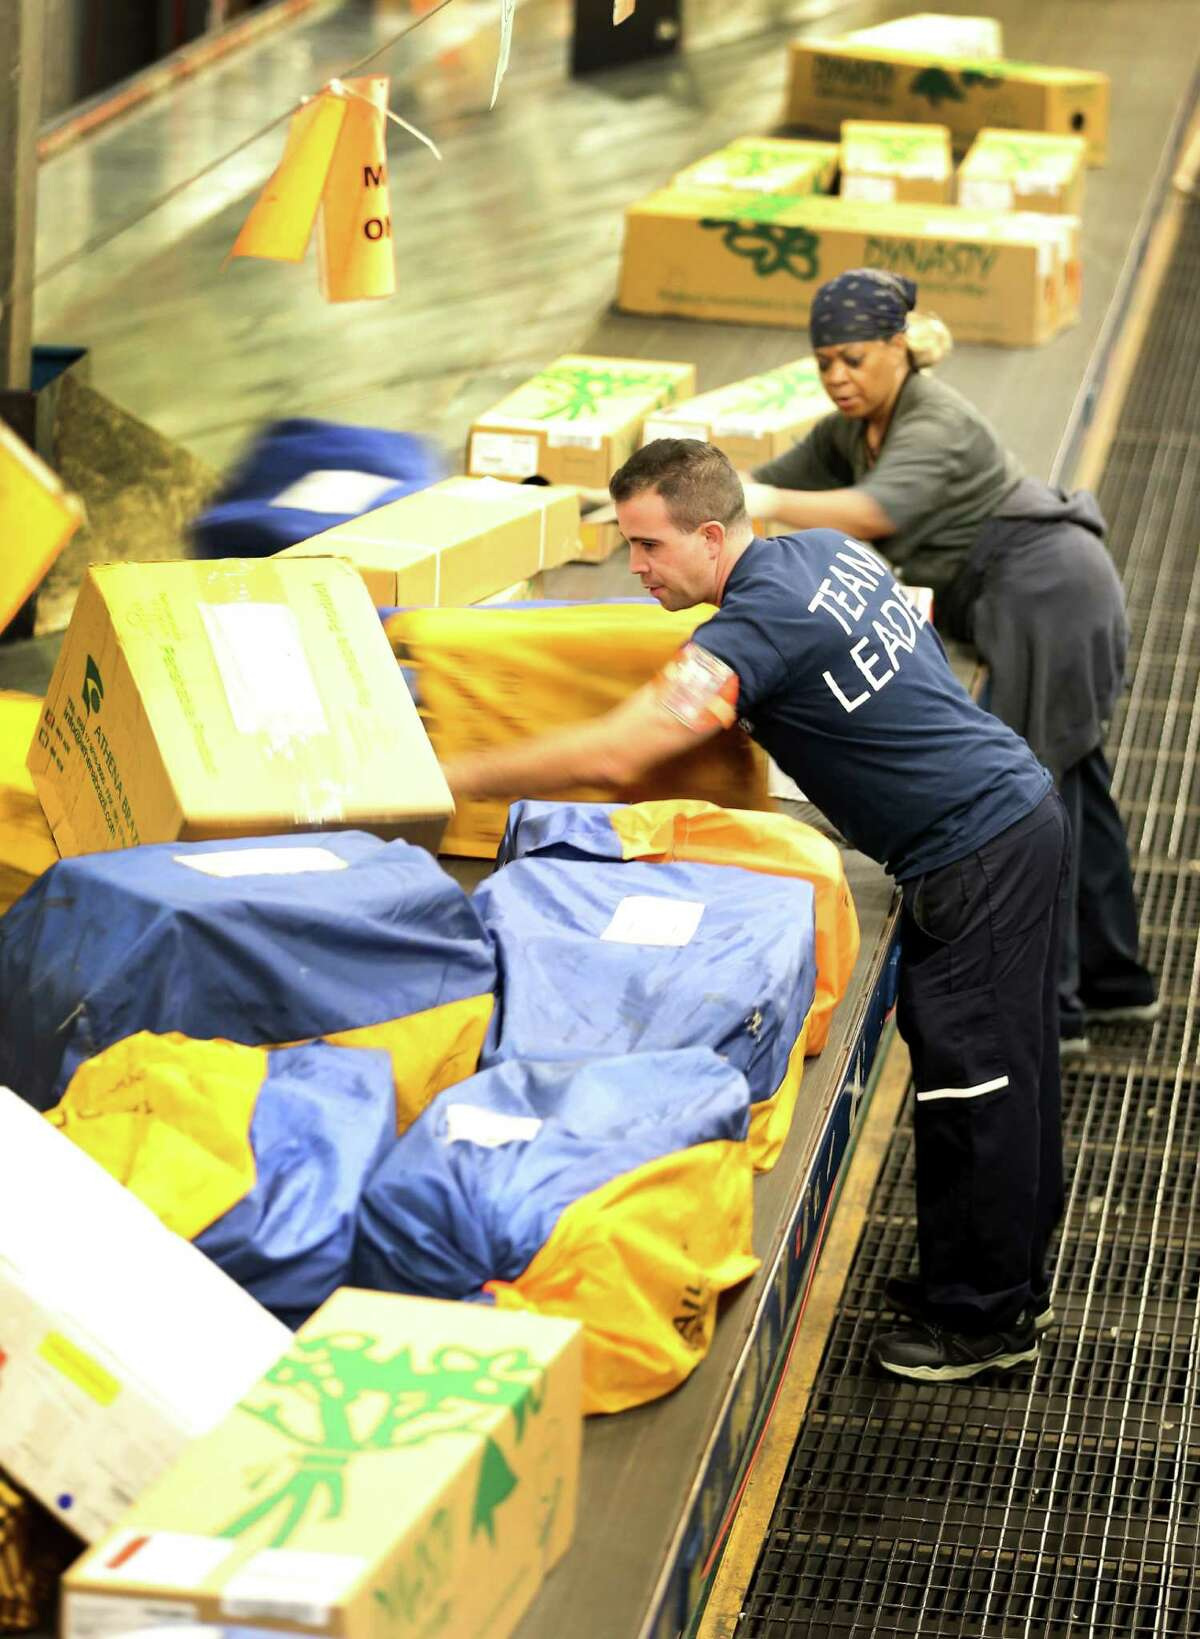 FedEx employees sort through packages at a shipping center that are heading out for delivery on last year's Cyber Monday, the top online spending day since researcher comScore Inc. began tracking online sales in 2001, posting $1.74 billion in sales, not including mobile sales.